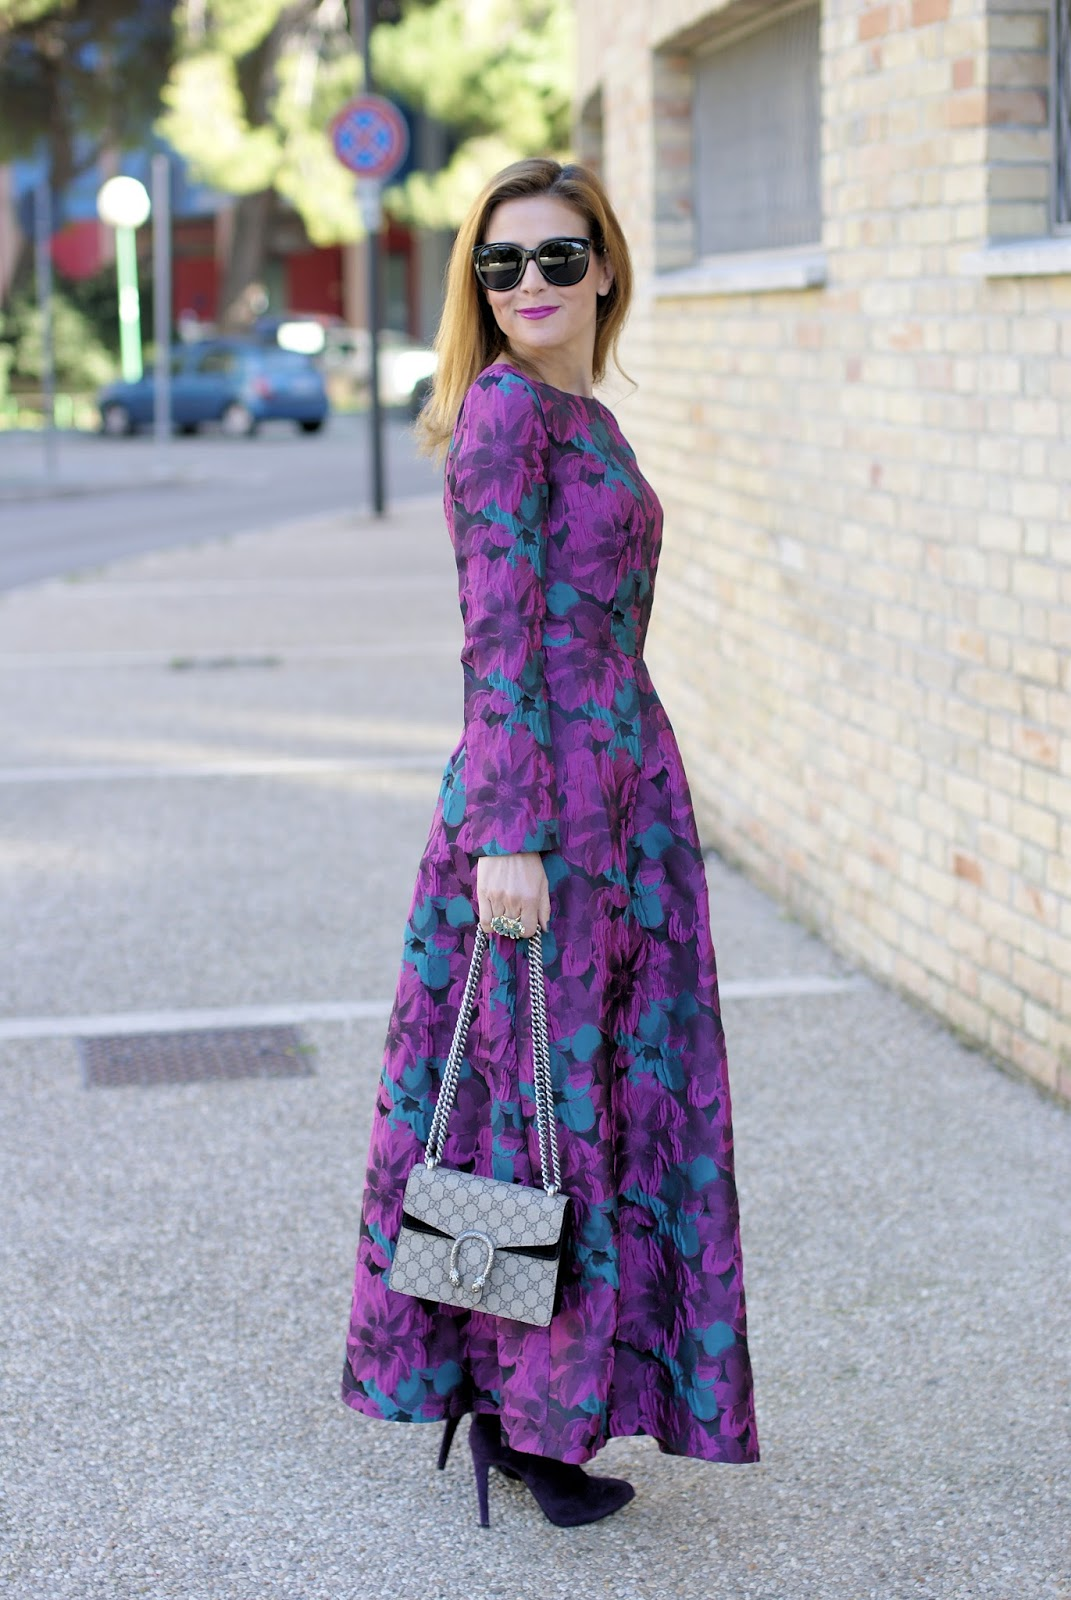 Floral maxi vintage dress, Sicky Eyewear S6 sunglasses and mini Gucci Dionysus bag on Fashion and Cookies fashion blog, fashion blogger style